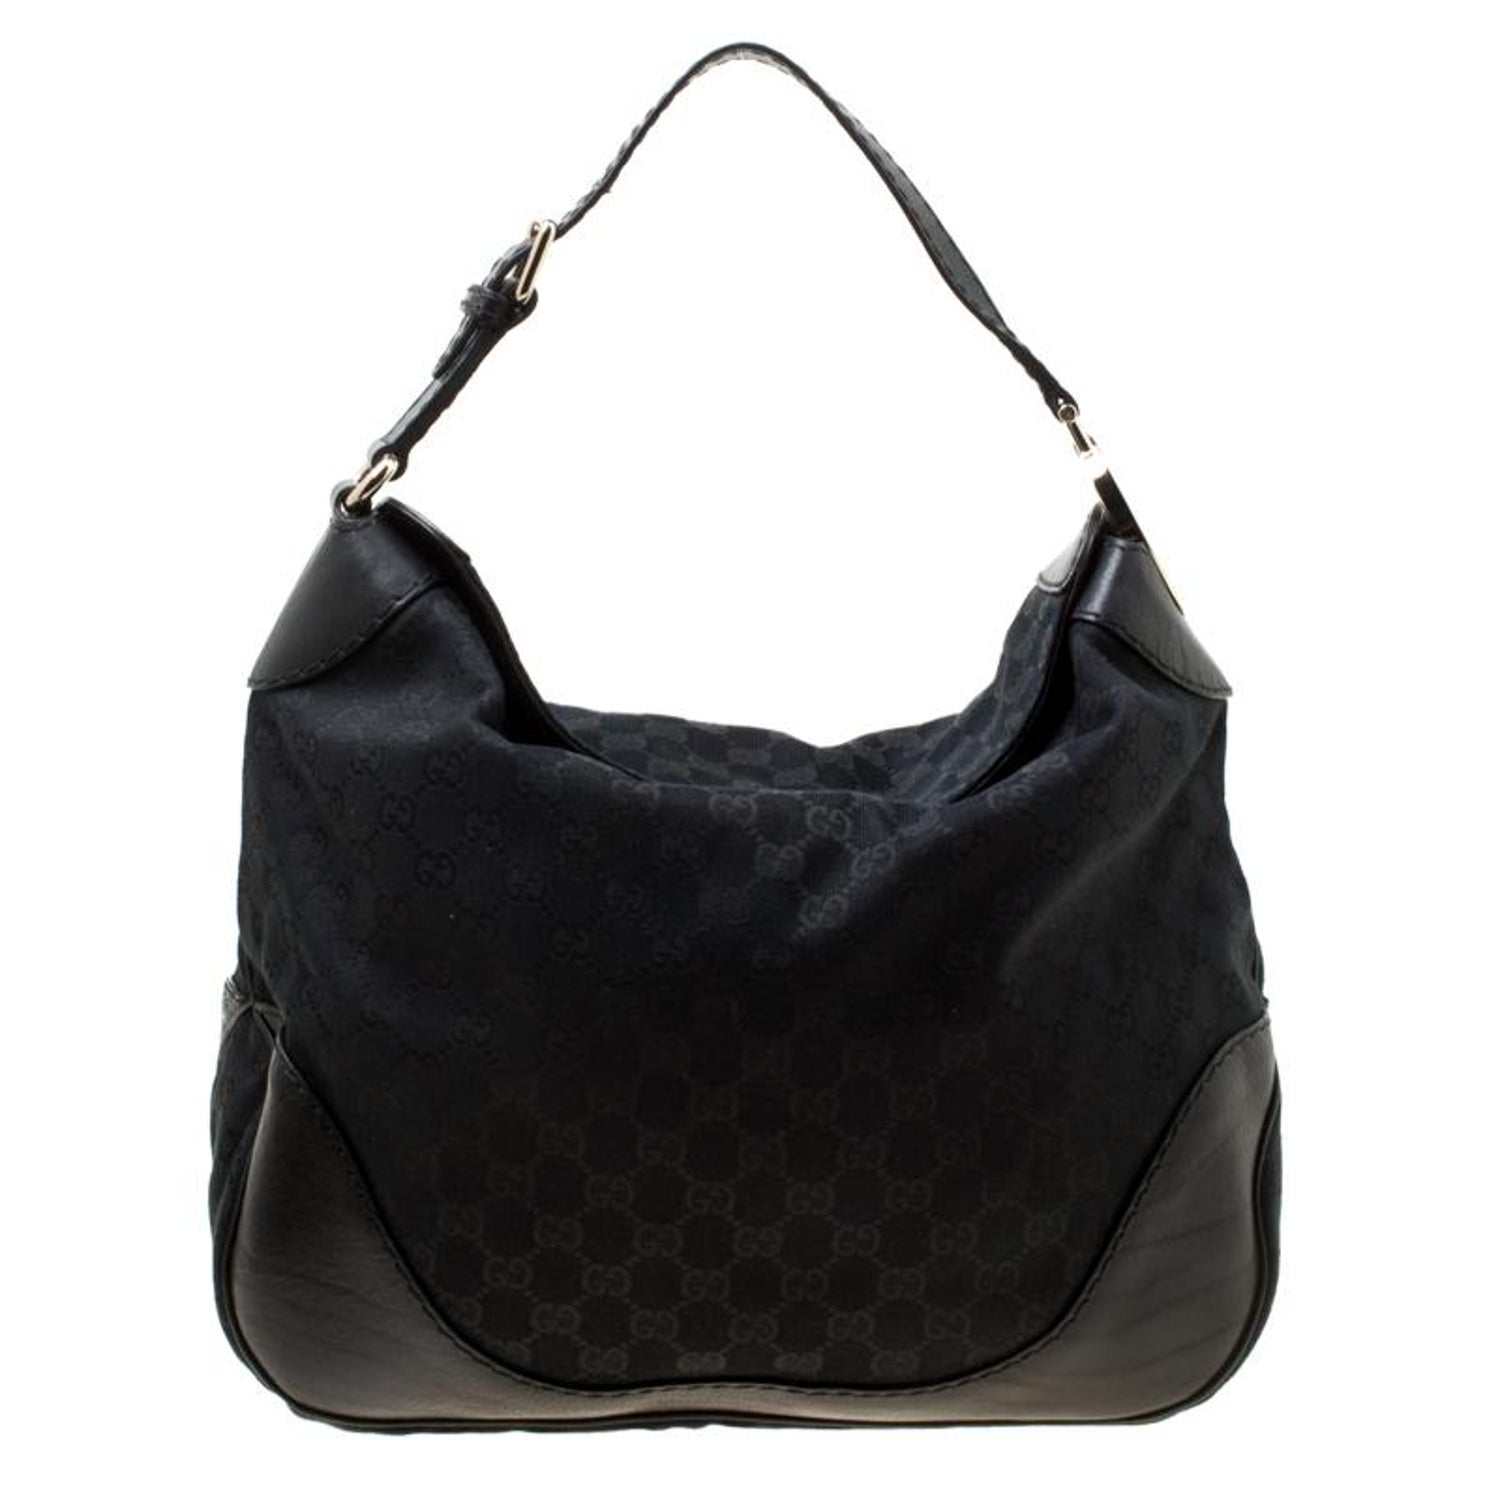 3eecf492e Gucci Black GG Canvas and Leather Medium Charlotte Hobo For Sale at 1stdibs